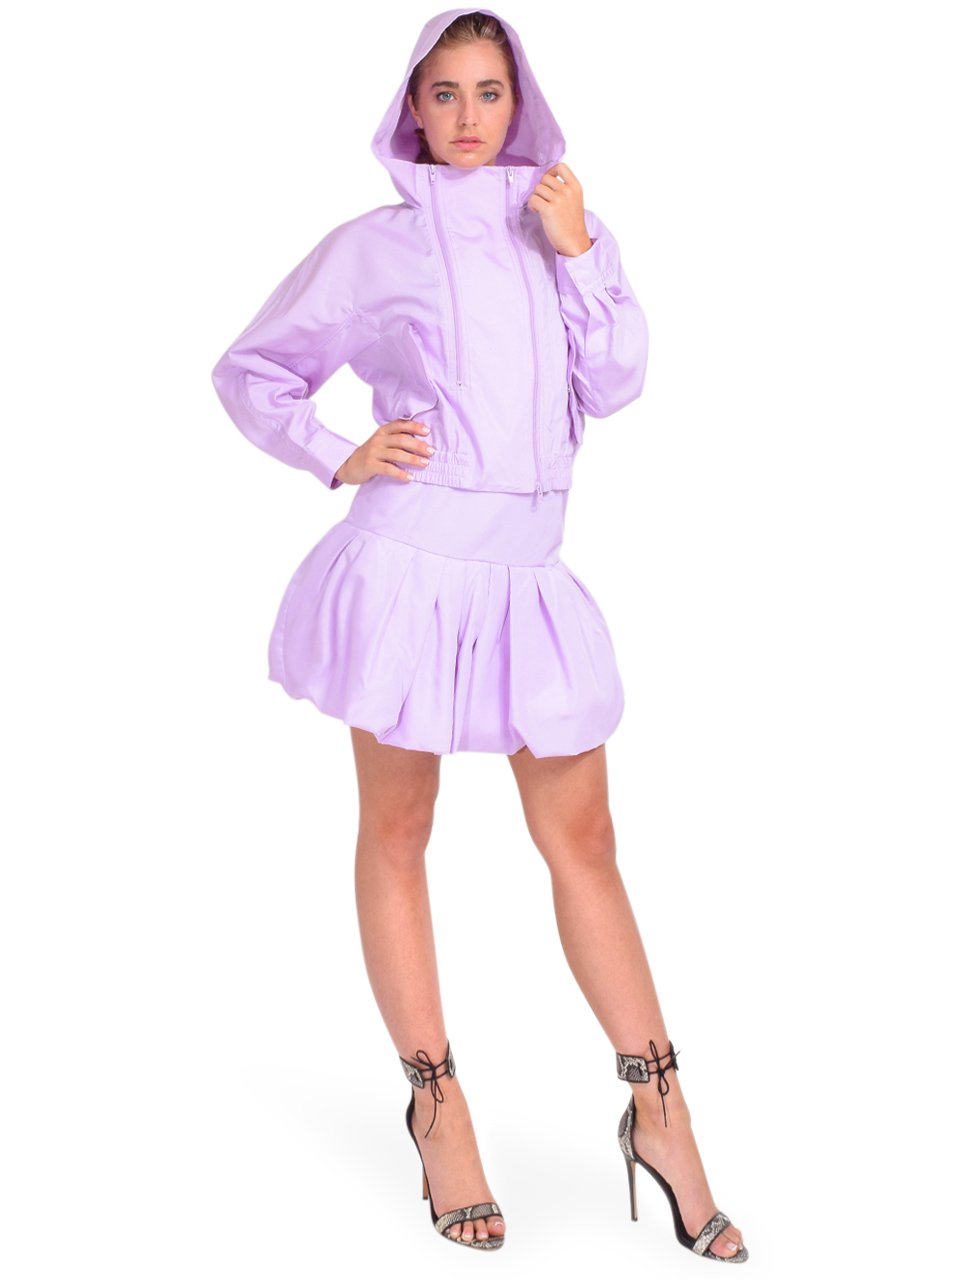 3.1 Phillip Lim Taffeta Hooded Boxing Jacket in Lavender Full Outfit 1